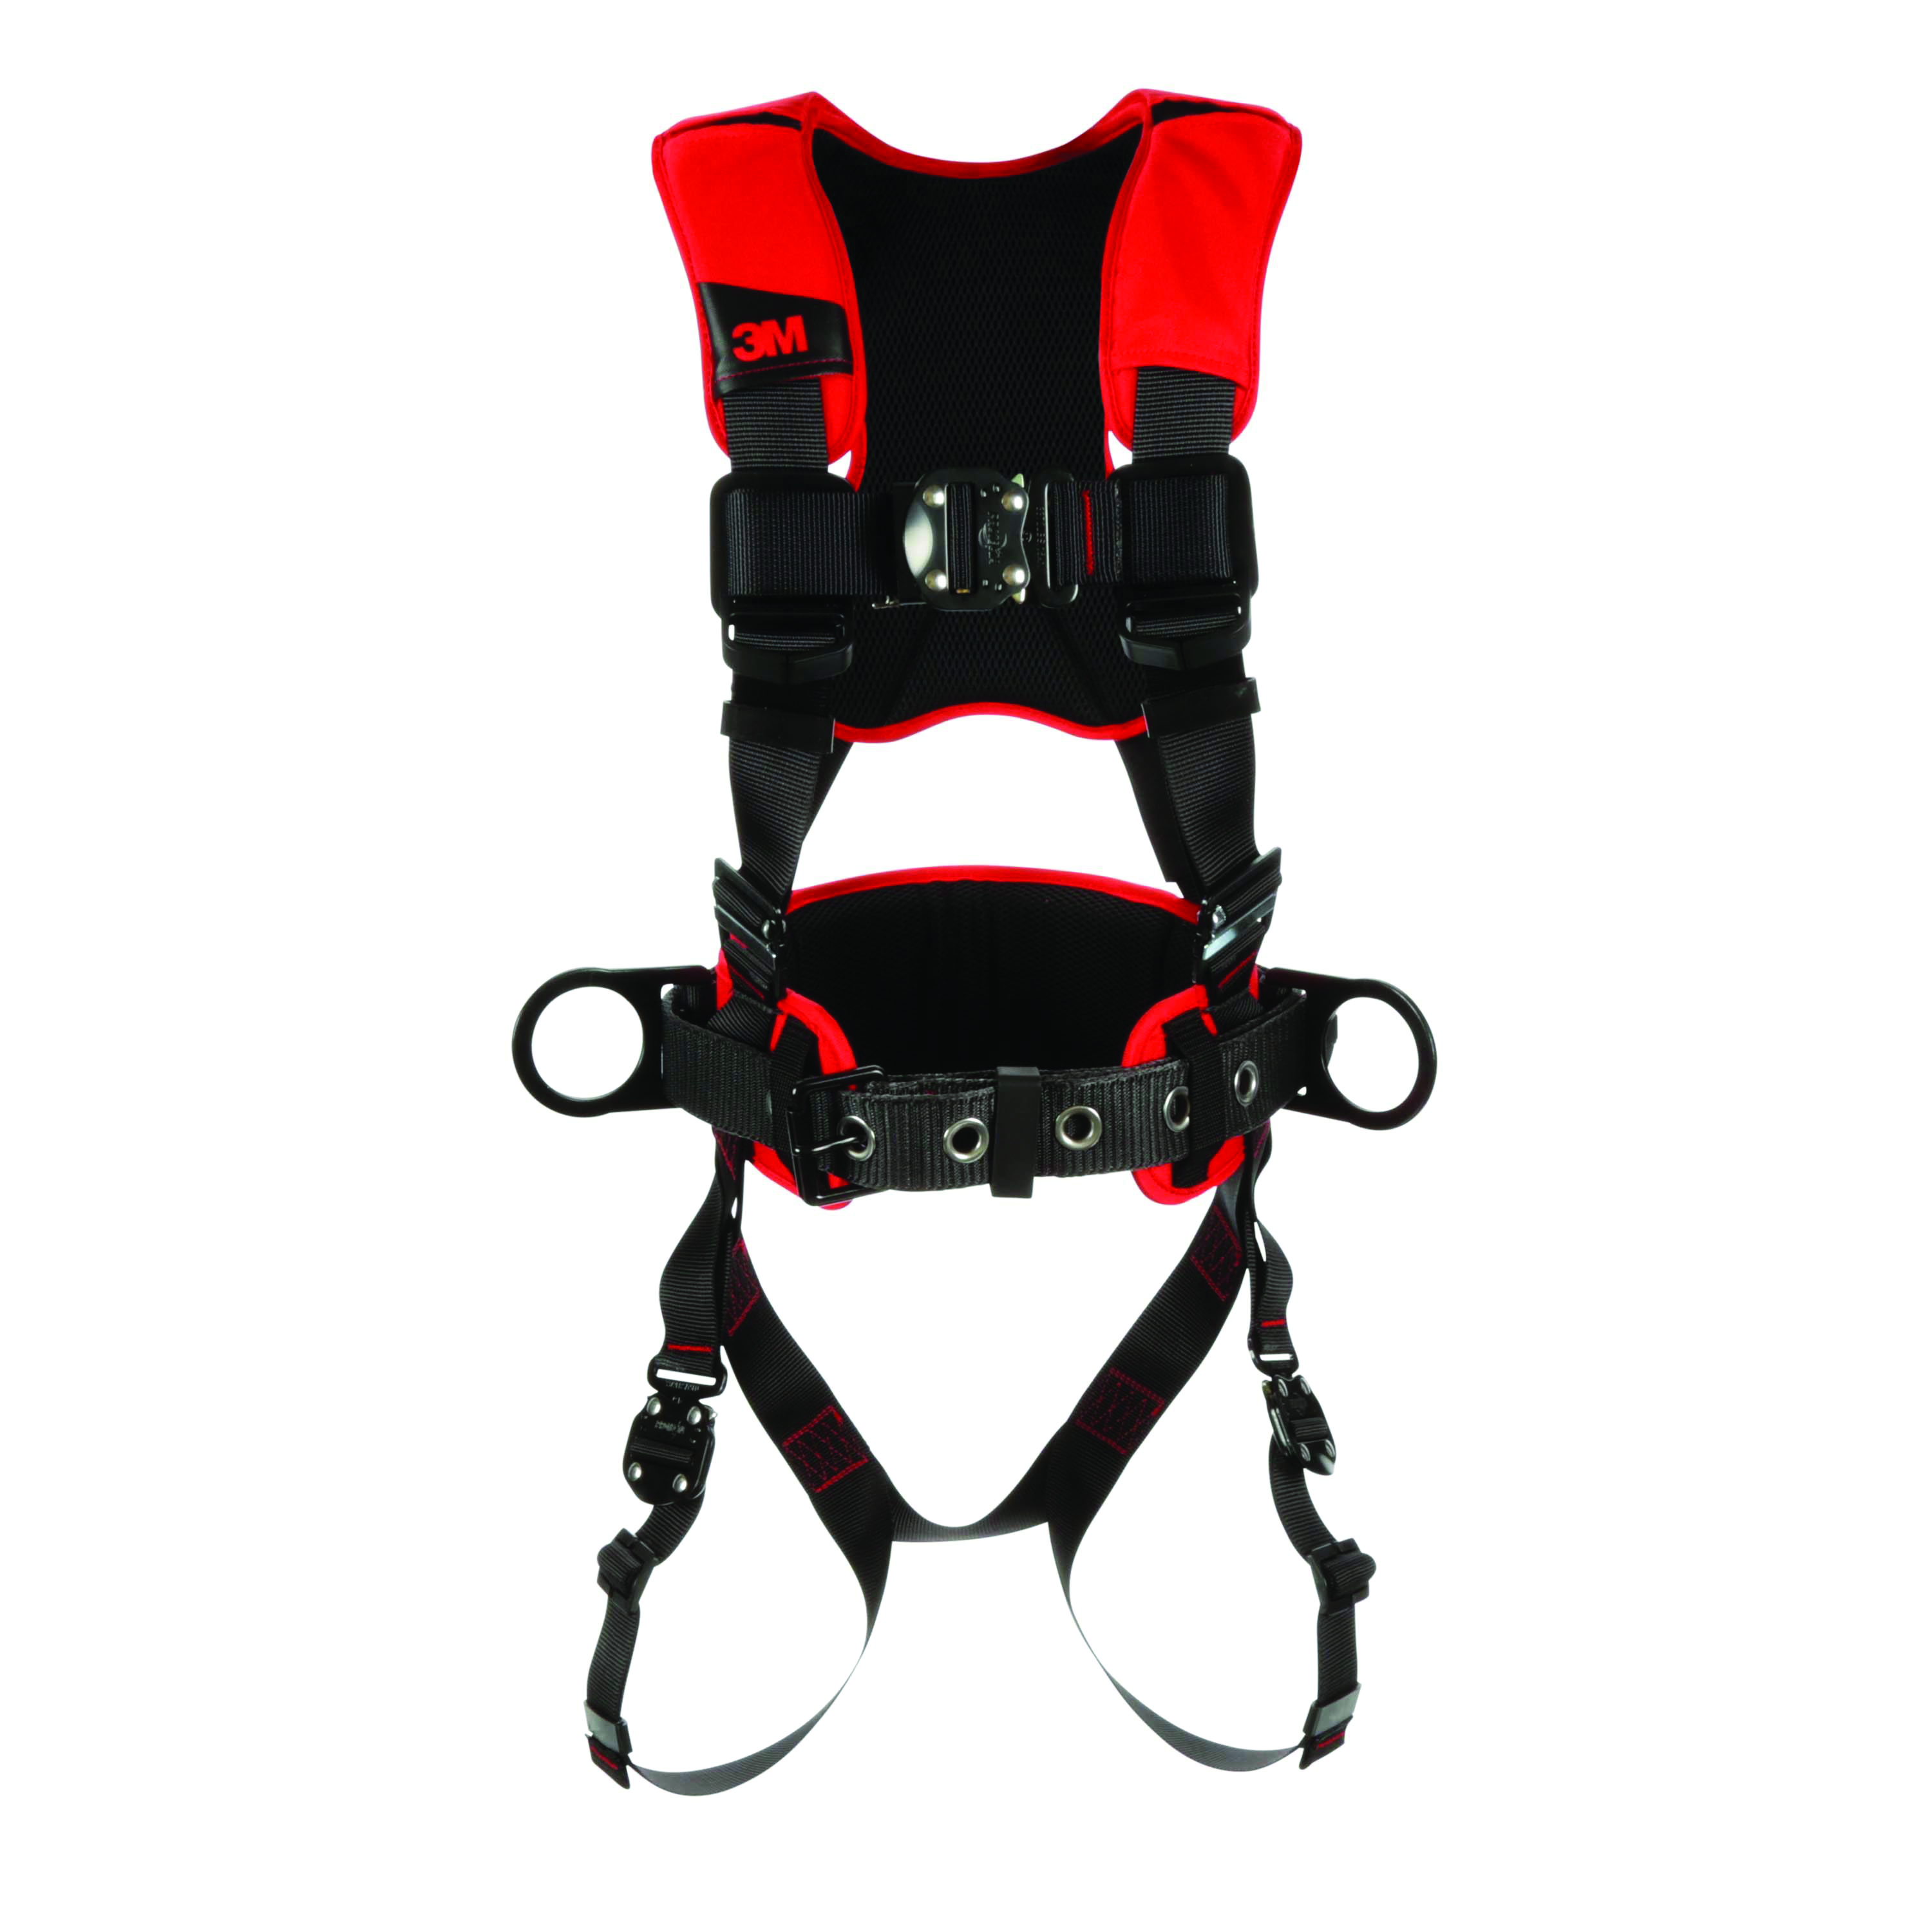 1161310 - PRO Construction Style Harnesses-Protecta® Construction Style Positioning Harness-Red and Black, Size X-Large----UOM: 1/EA